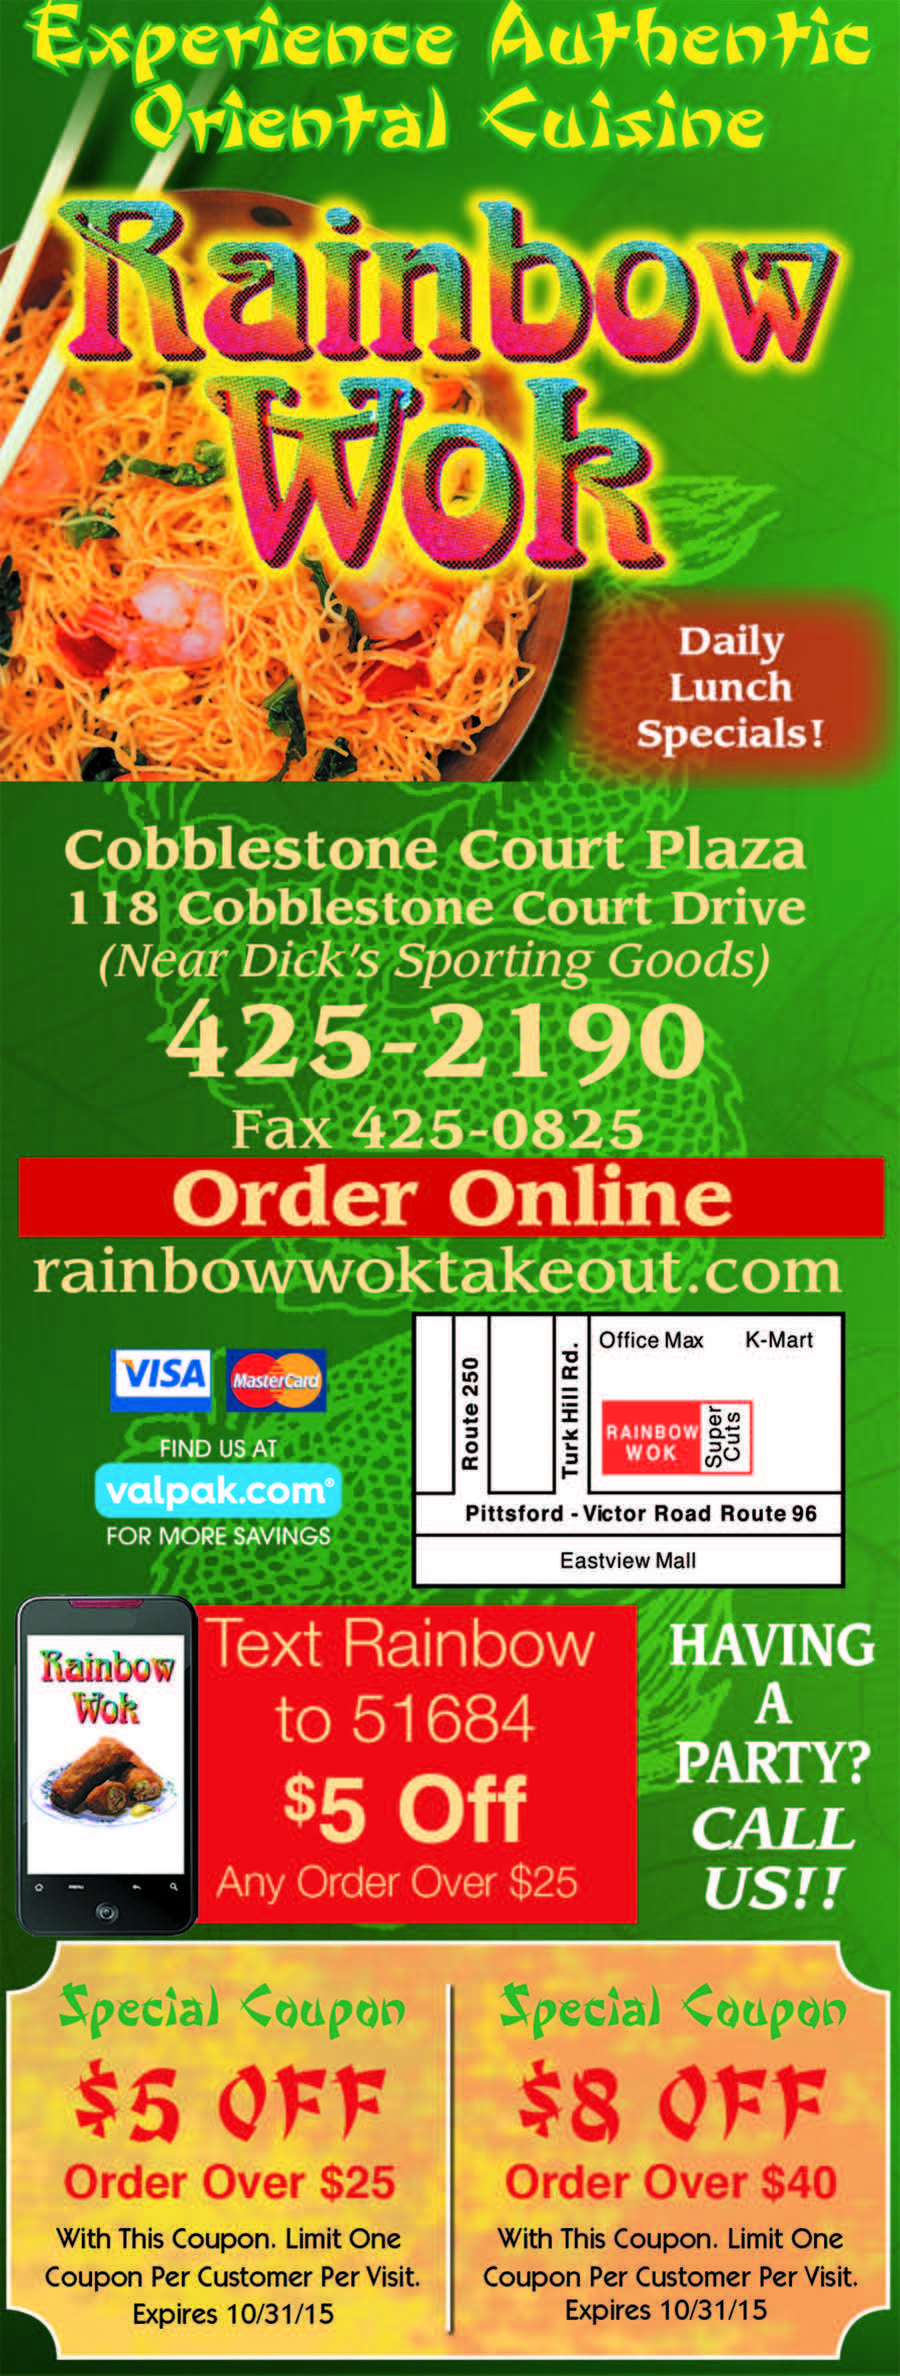 Coupons for specials with the rainbow wok get your sweet